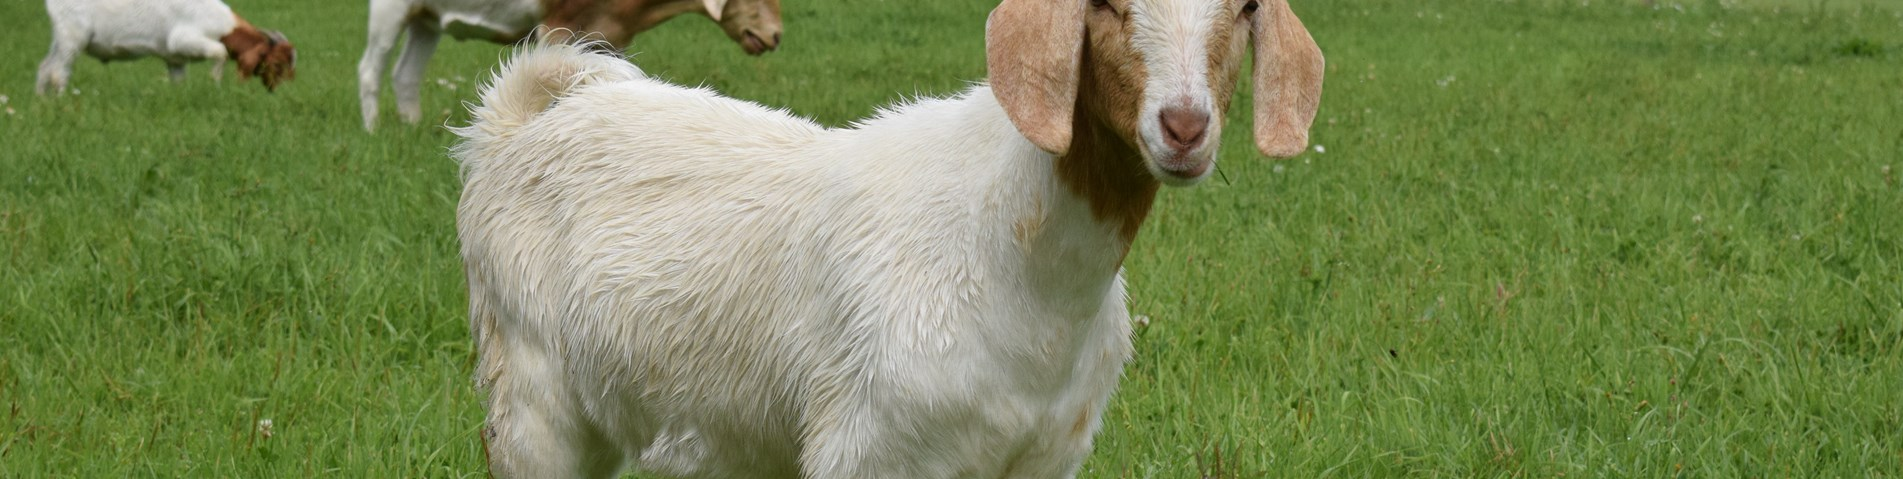 Goats at Bere Marsh Farm 2.jpg